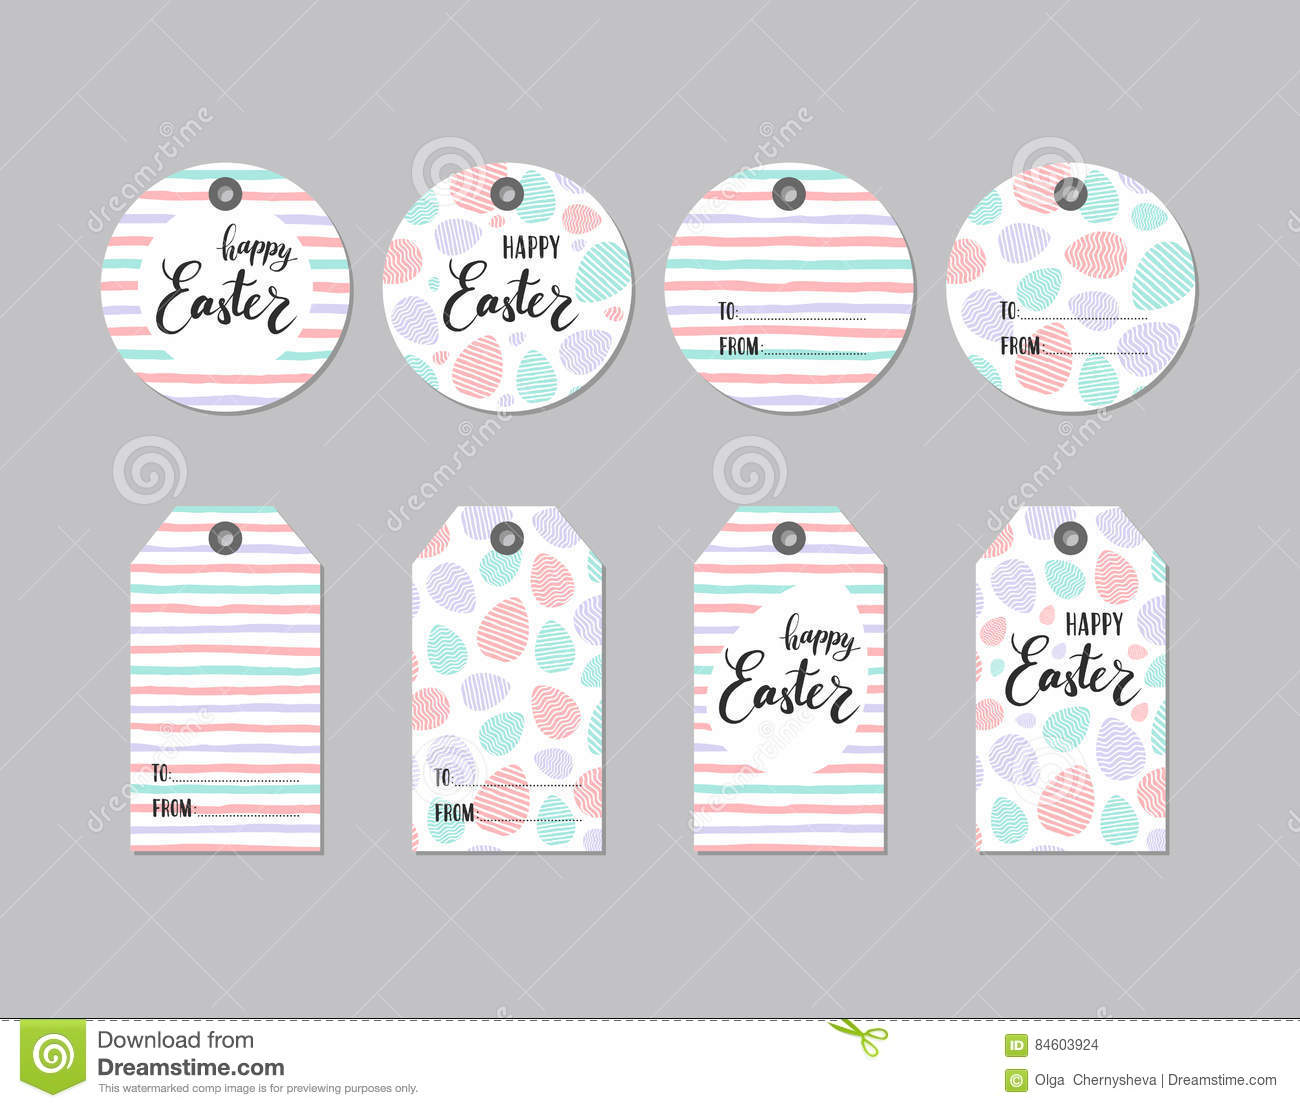 Collection of cute gift tag happy easter stock vector collection of cute gift tag happy easter royalty free vector negle Image collections